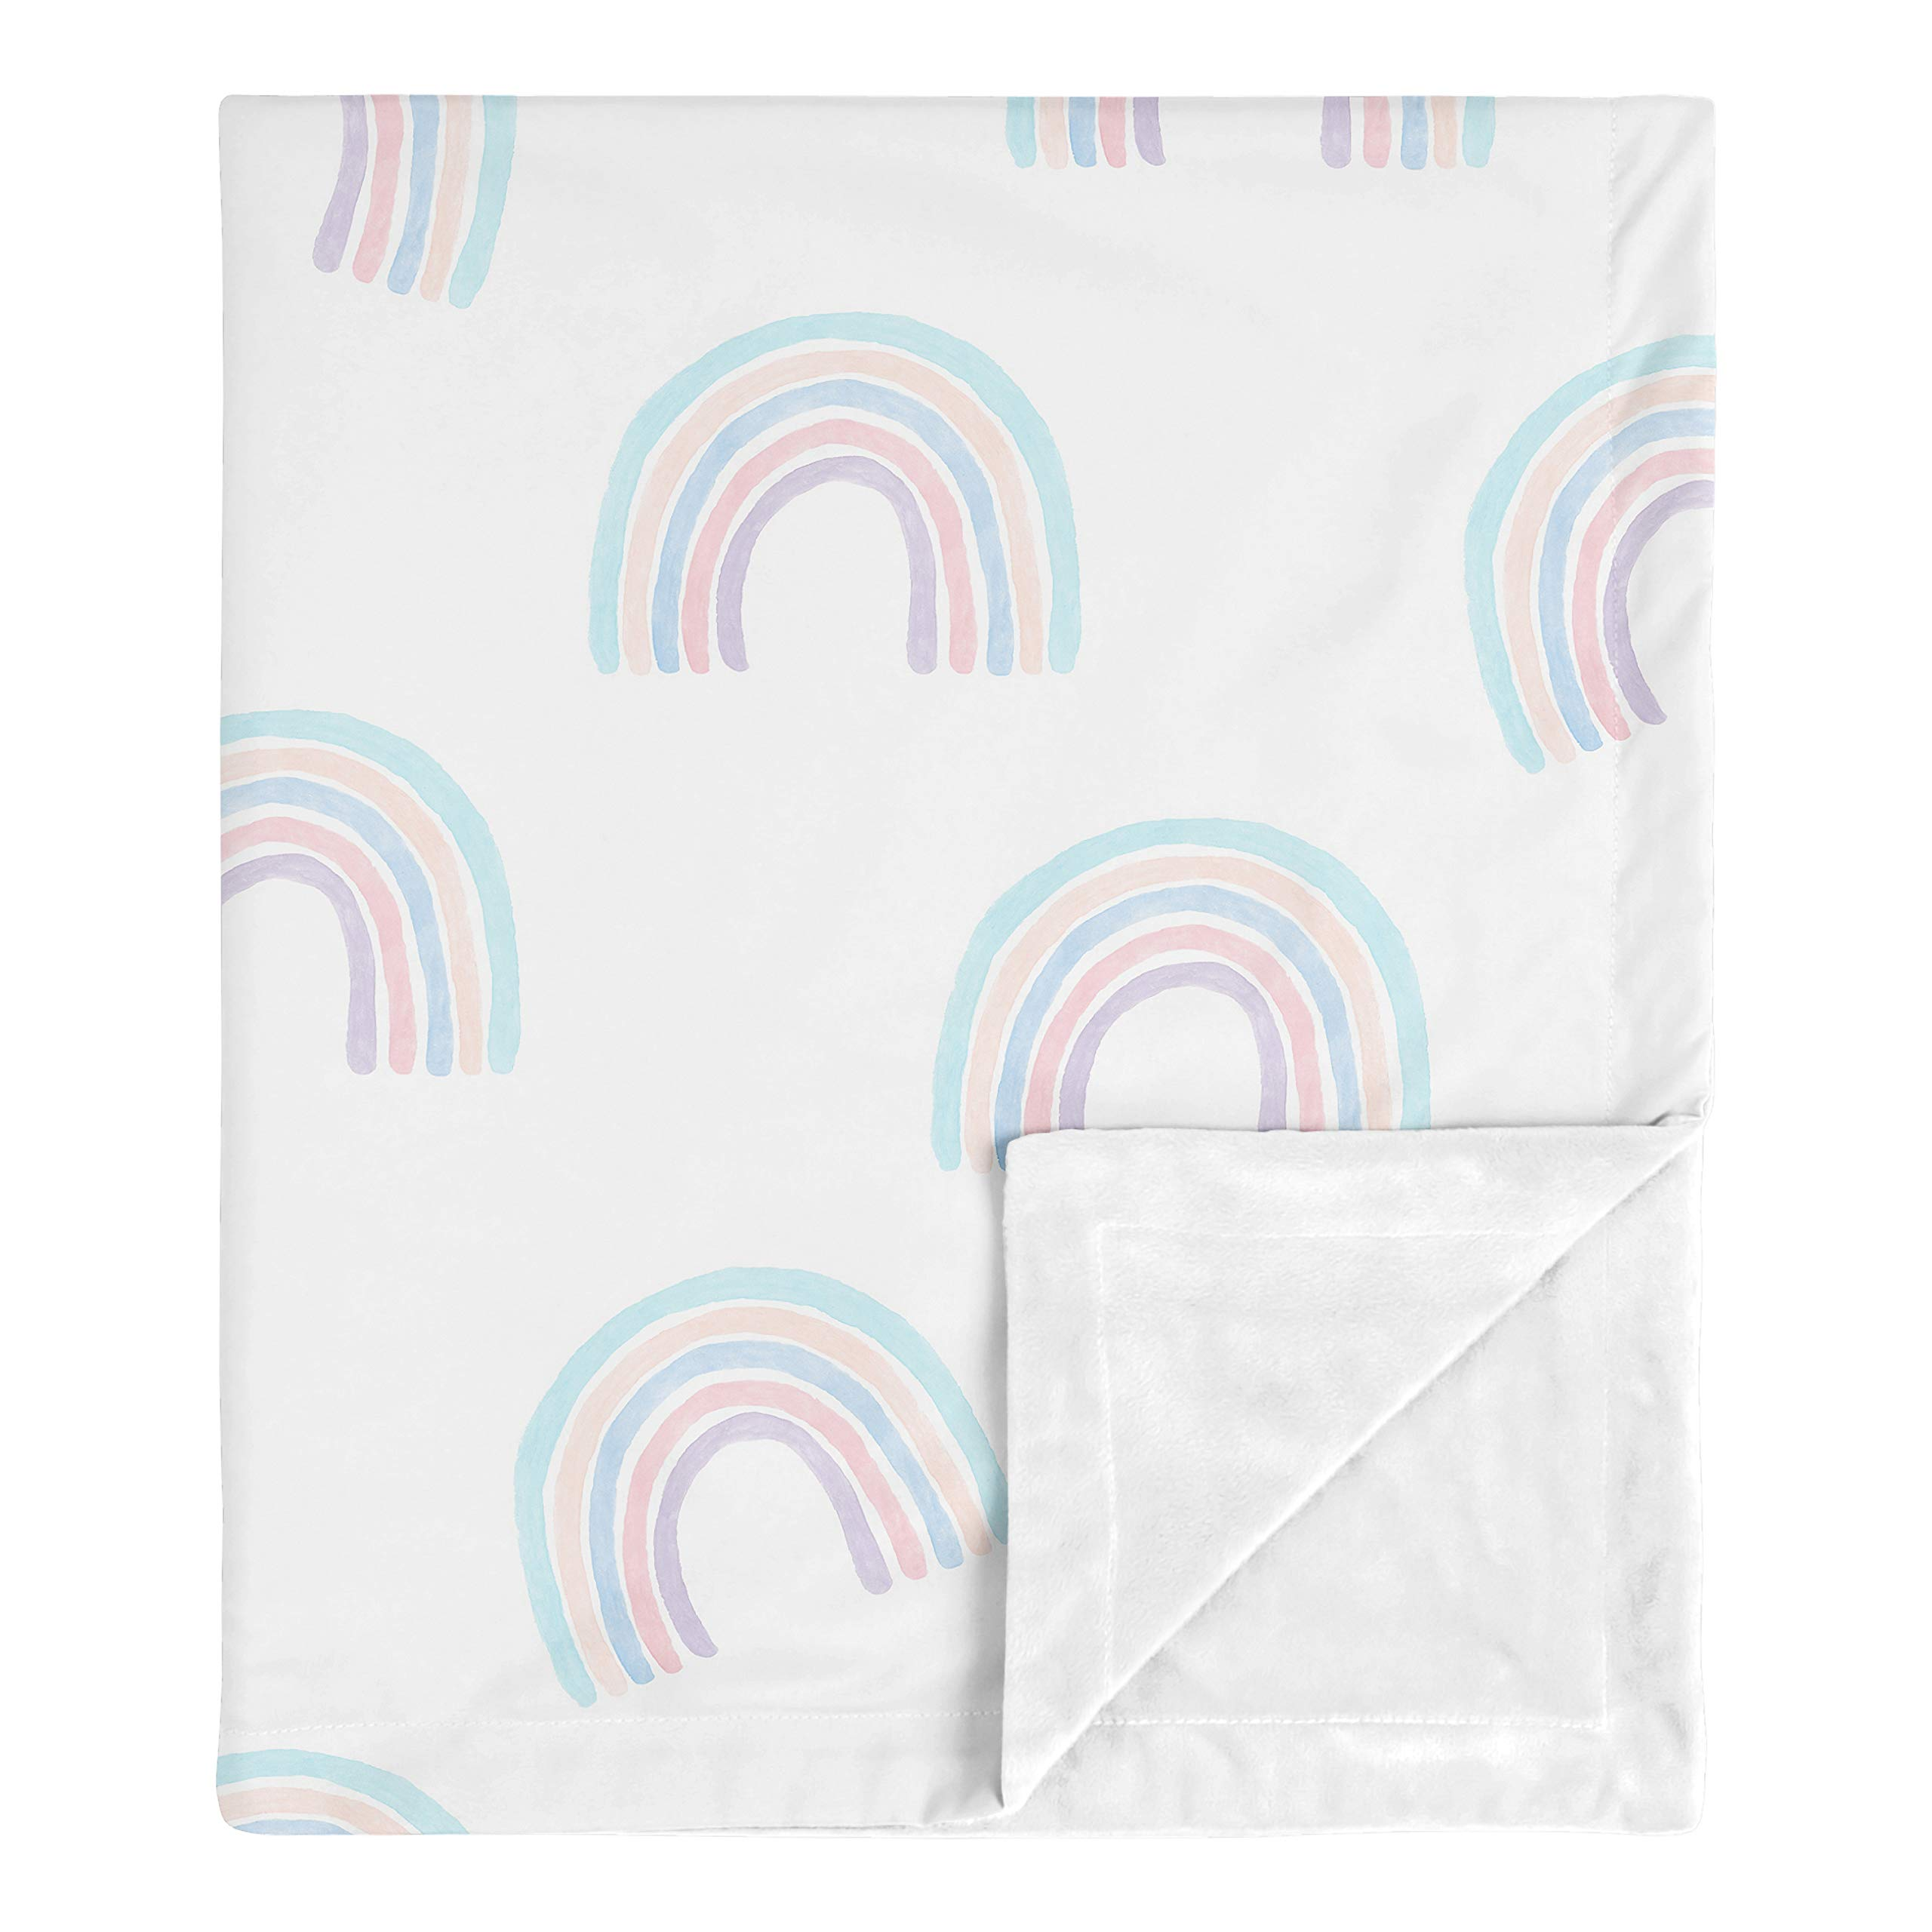 Sweet Jojo Designs Pastel Rainbow Baby Girl Receiving Security Swaddle Blanket for Newborn or Toddler Nursery Car Seat Stroller Soft Minky - Blush Pink, Purple, Teal, Blue and White